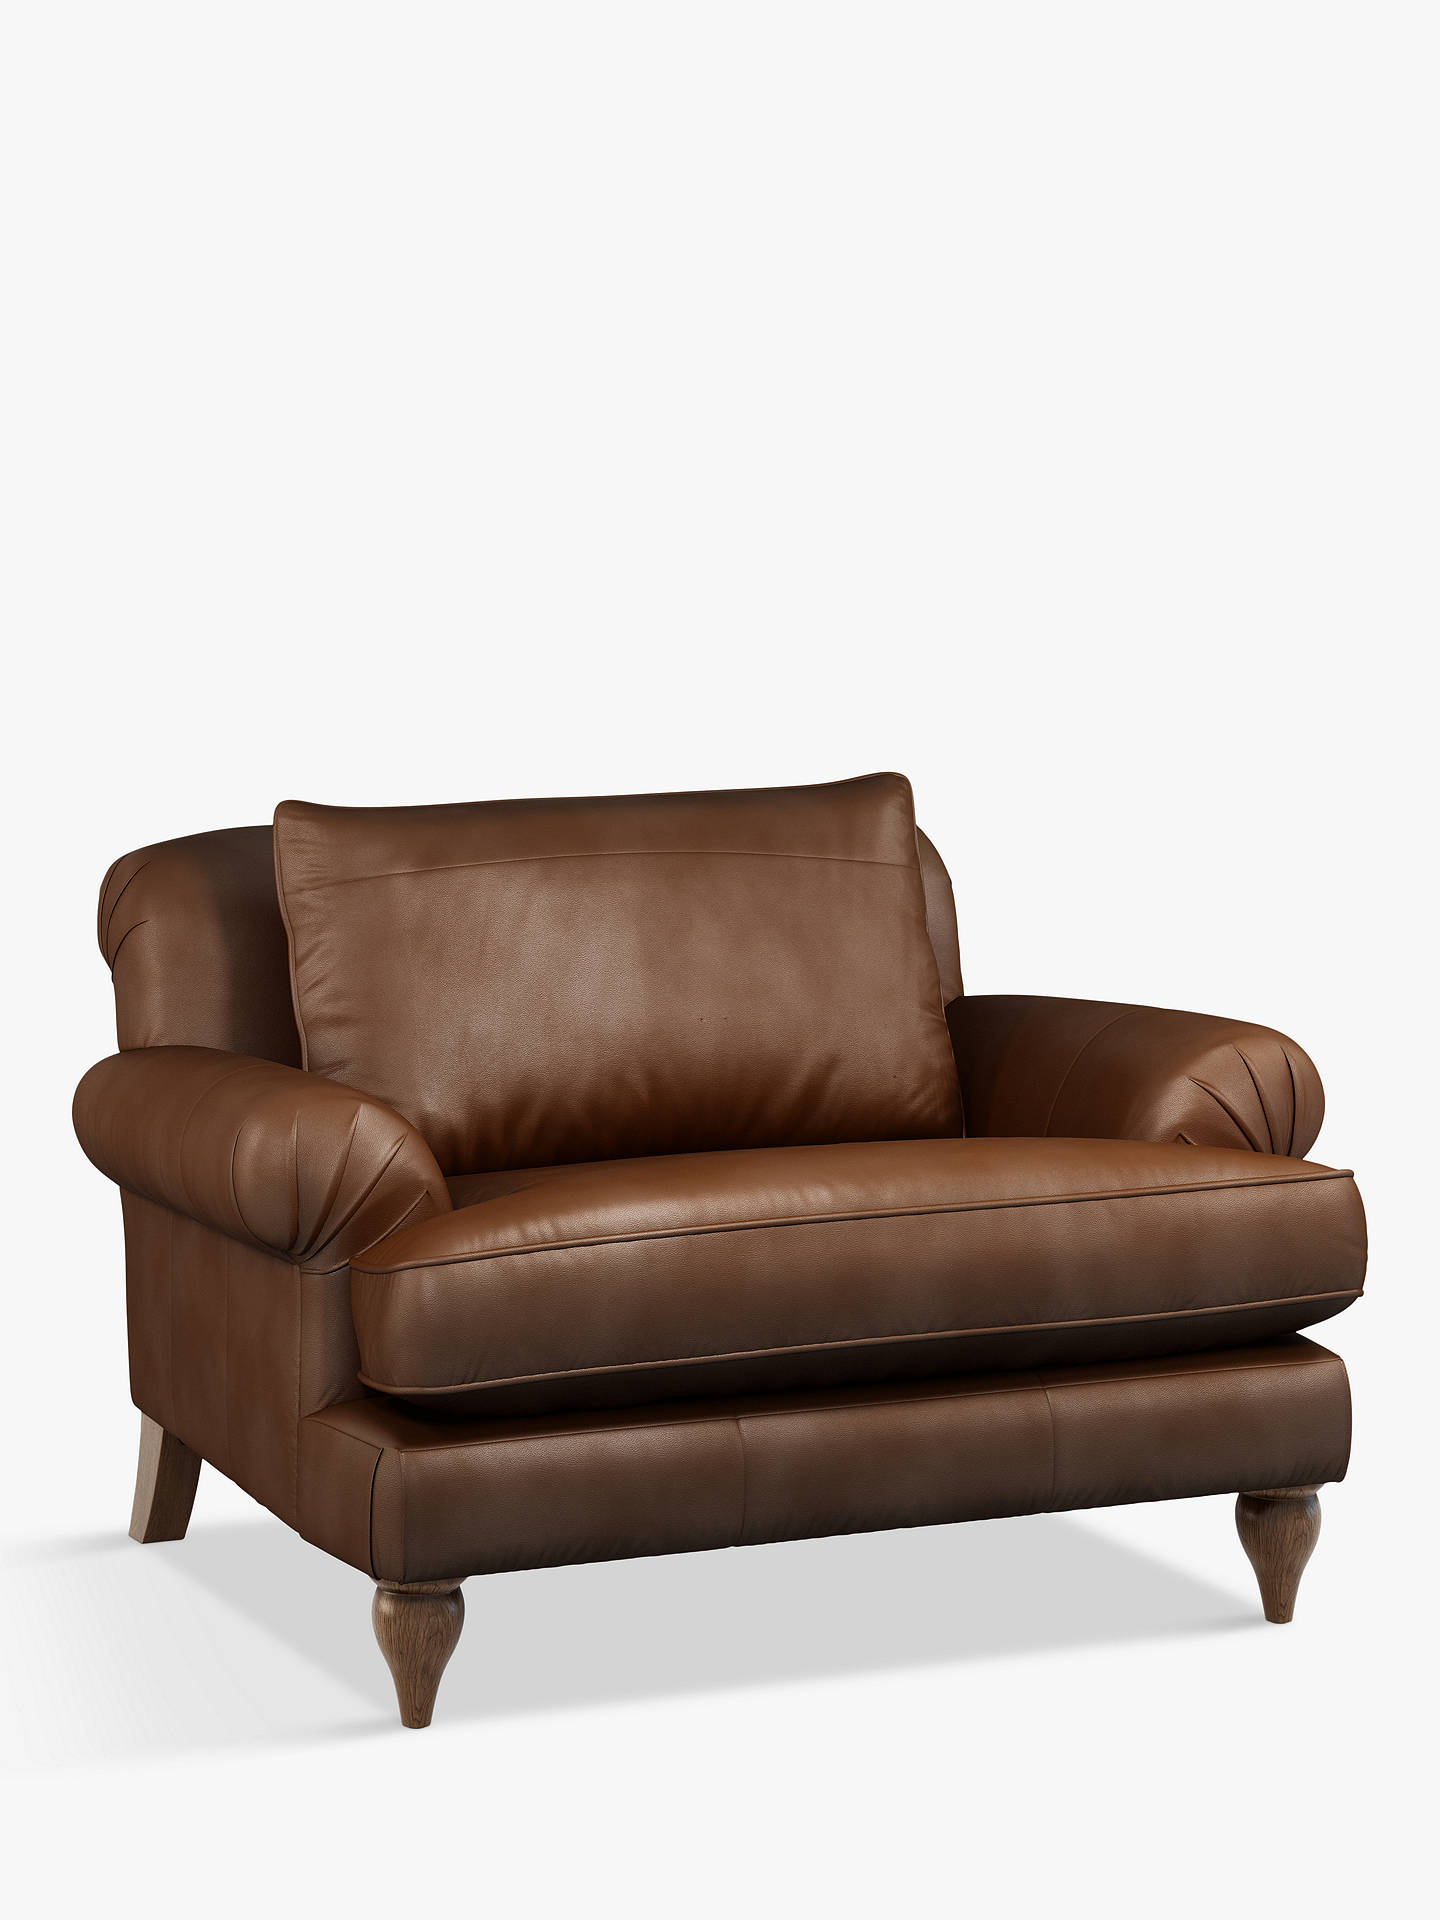 Buy Croft Collection Findon Leather Snuggler, Dark Leg, Contempo Castanga Online at johnlewis.com